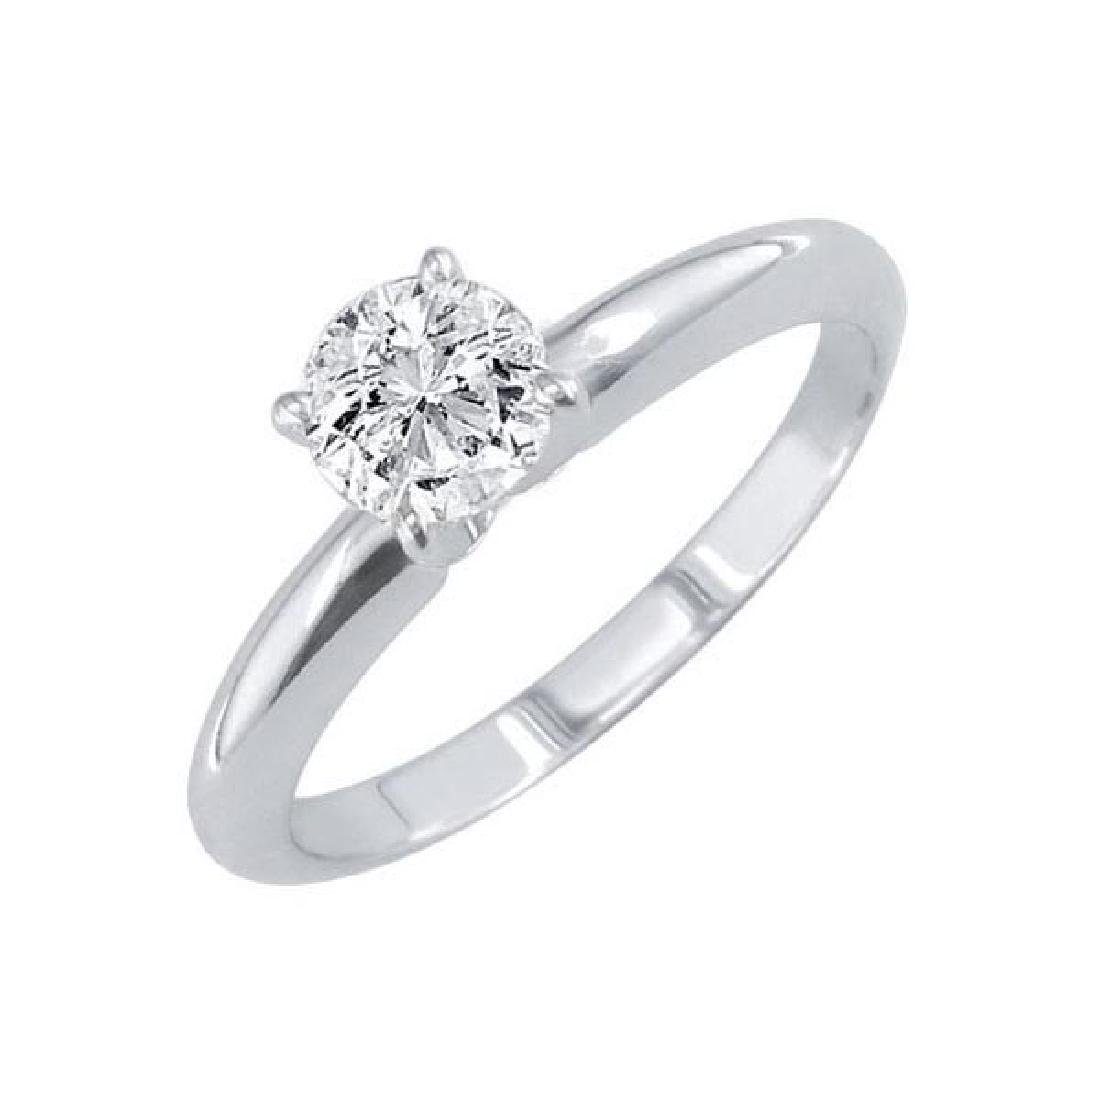 Certified 1 CTW Round Diamond Solitaire 14k Ring K/SI2